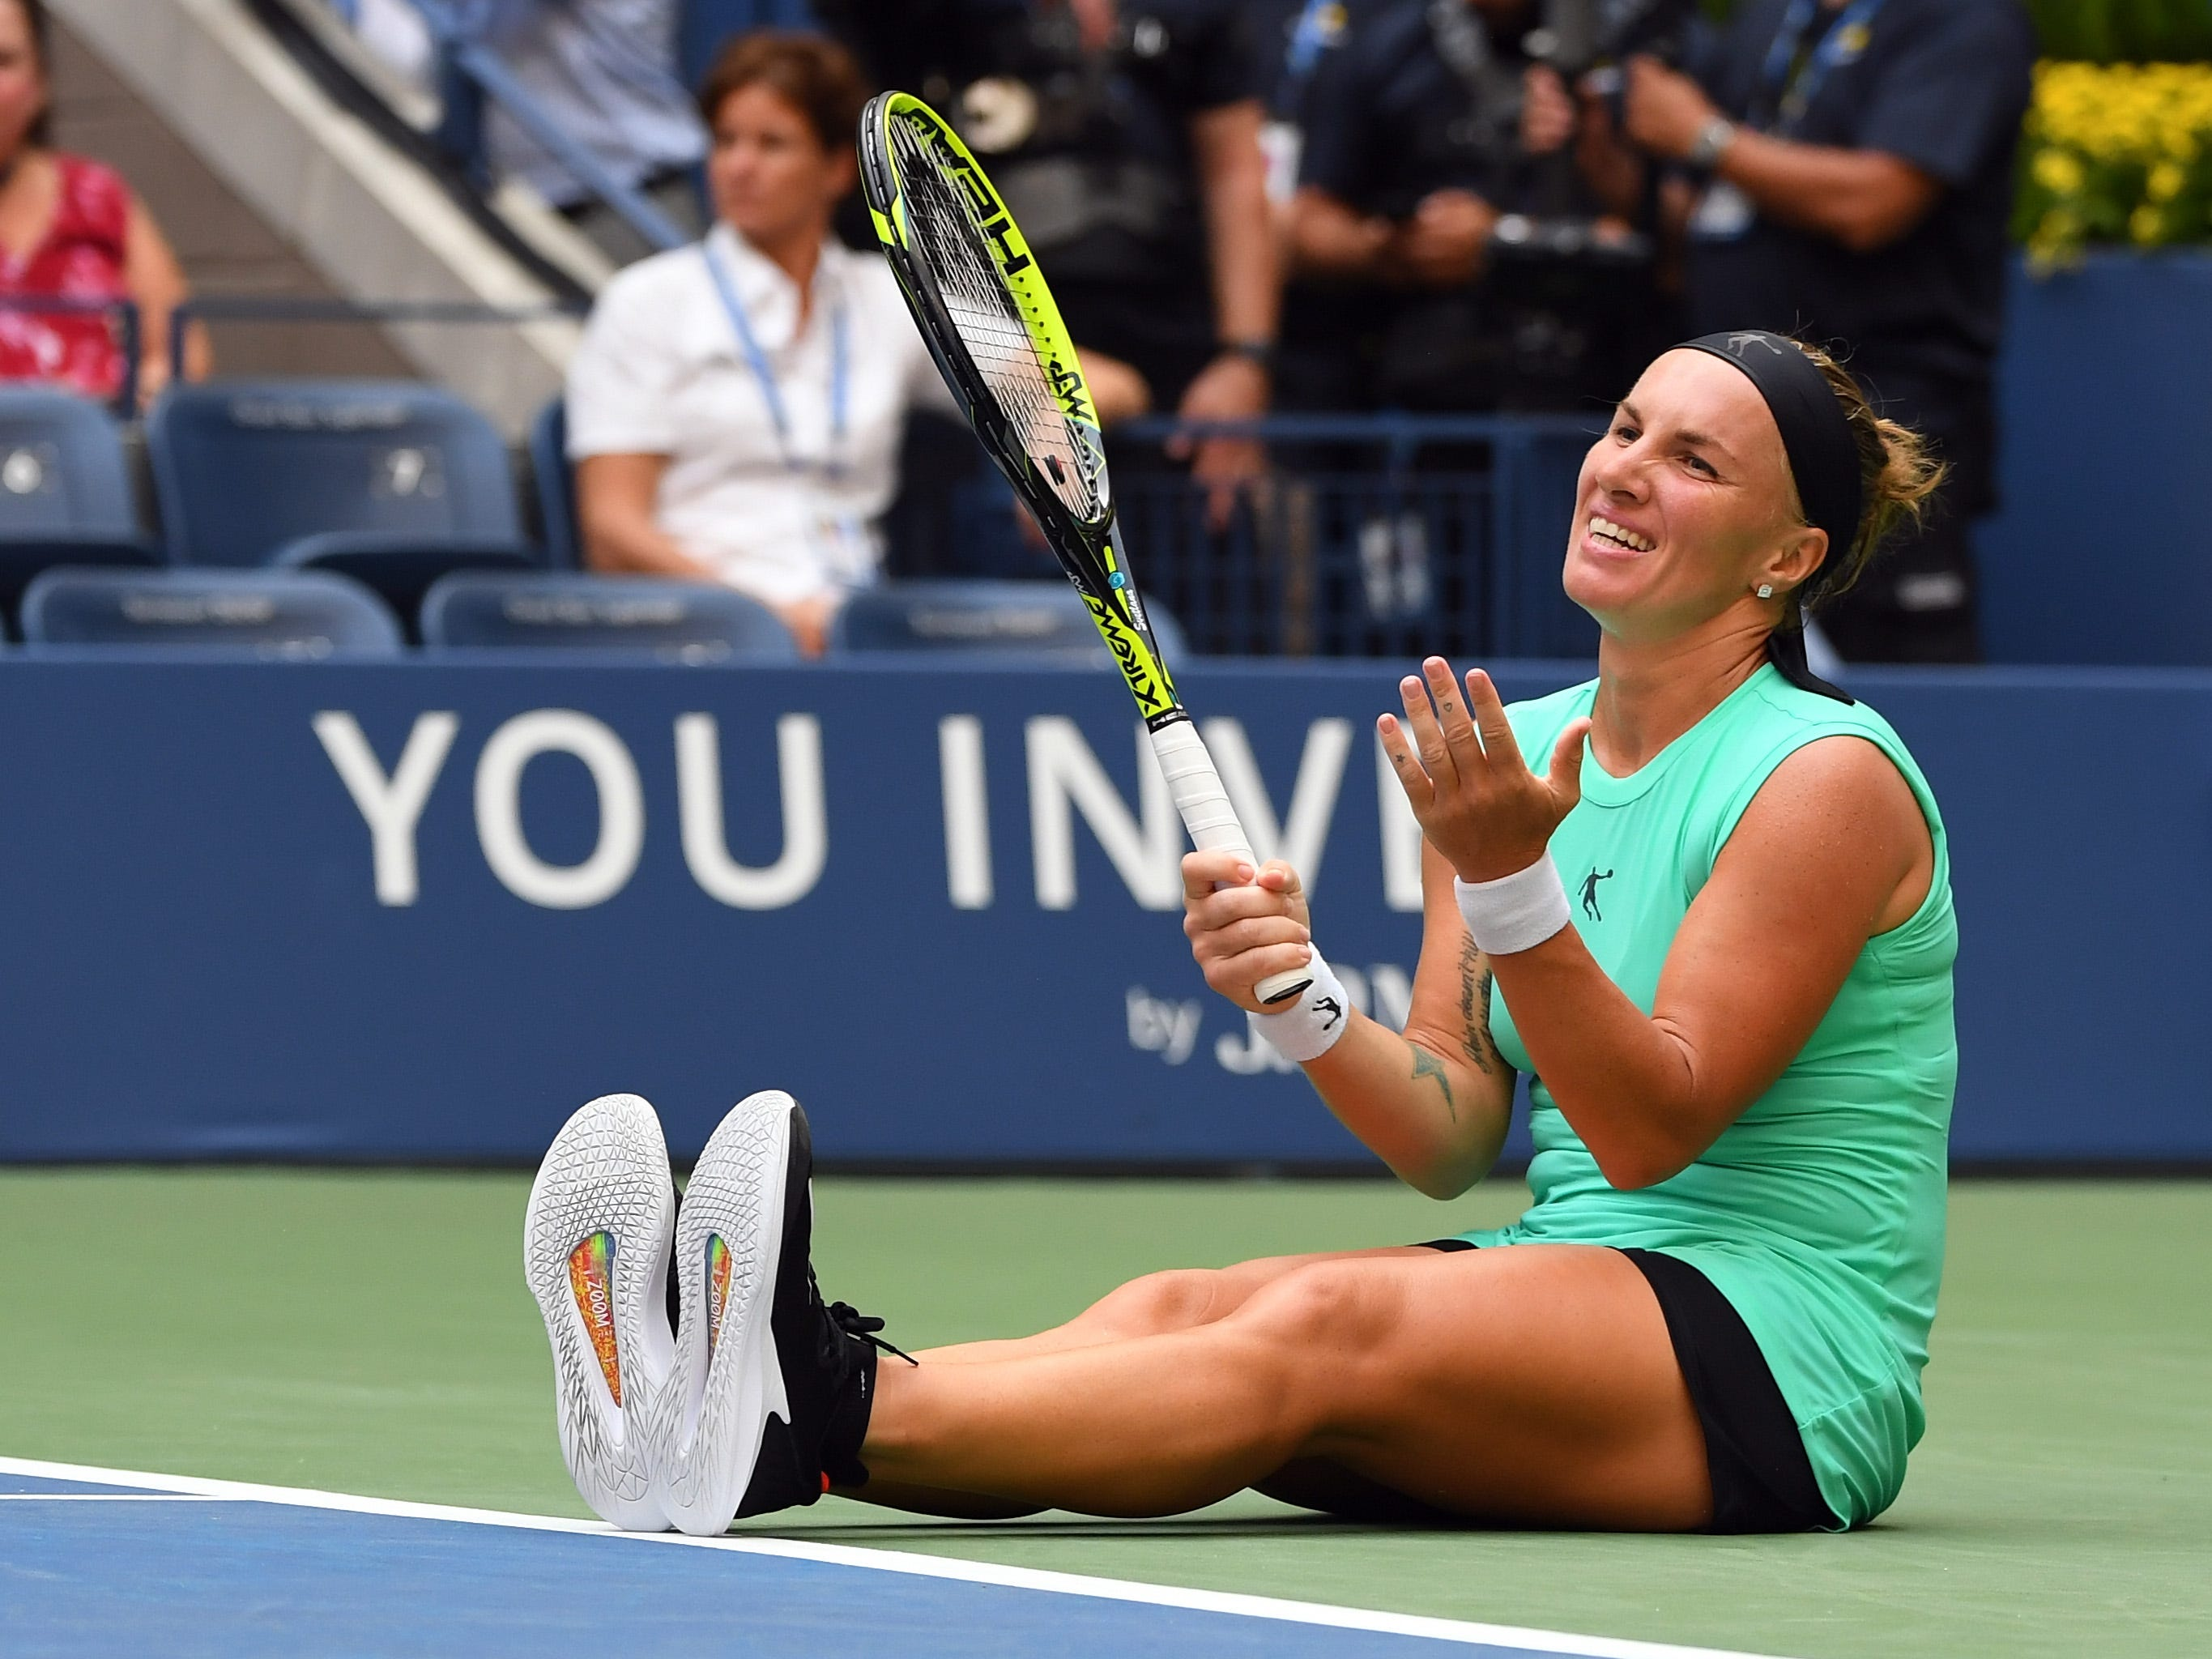 Svetlana Kuznetsova after missing a shot against Venus Williams.